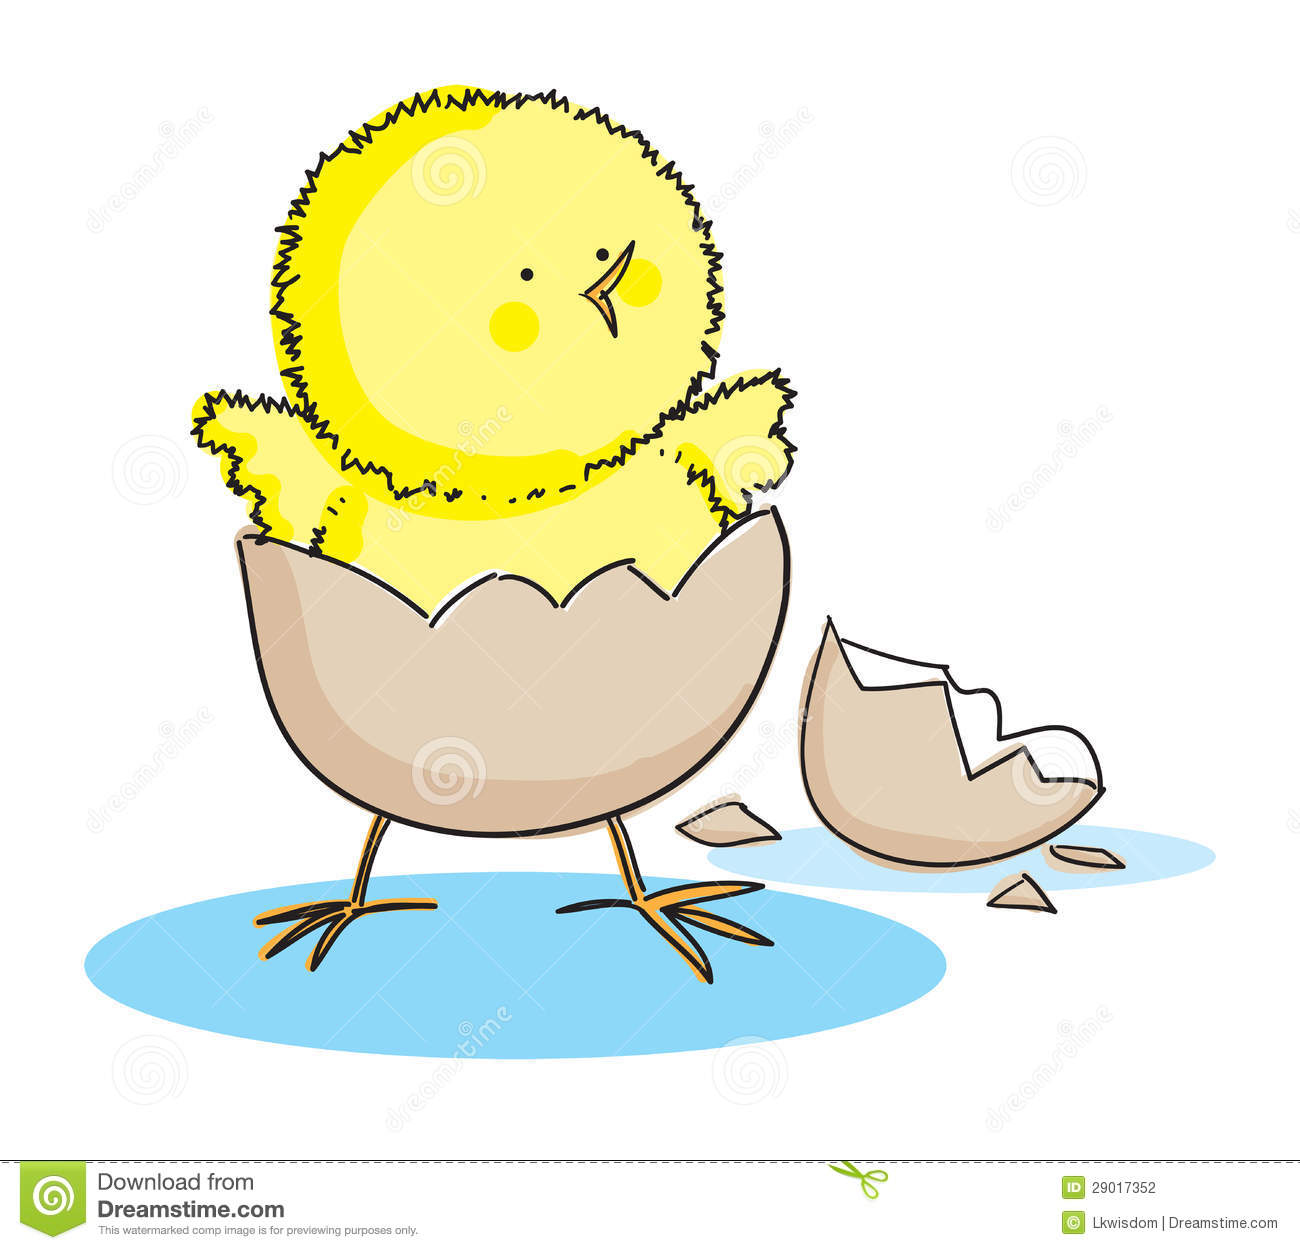 Hatching chick clipart svg free Hatching Easter Chick Stock | Clipart Panda - Free Clipart Images svg free